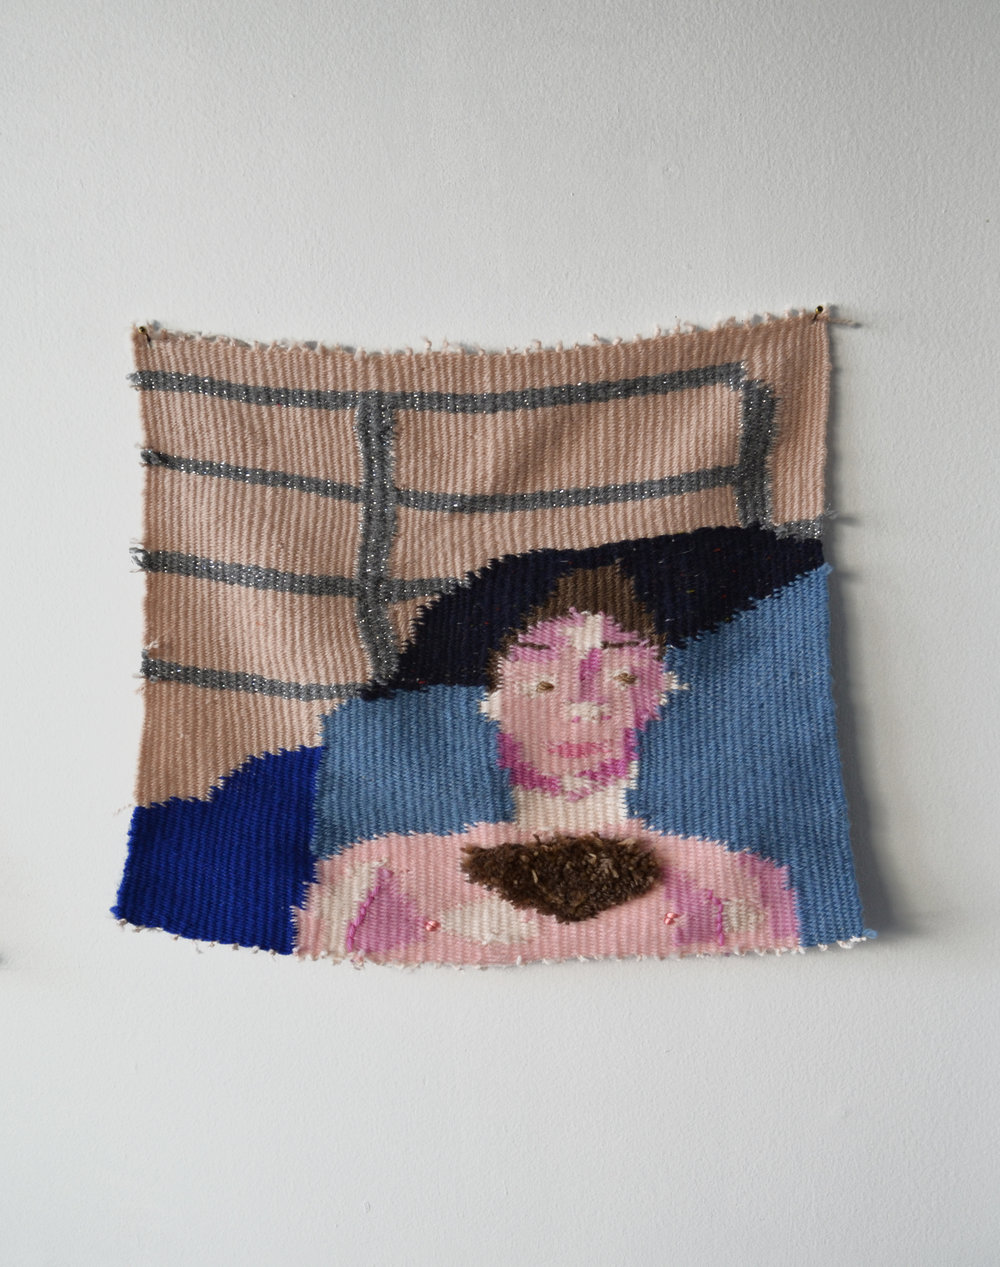 Slow Portrait of yngstud24  2016 Wool and Acrylic Yarn